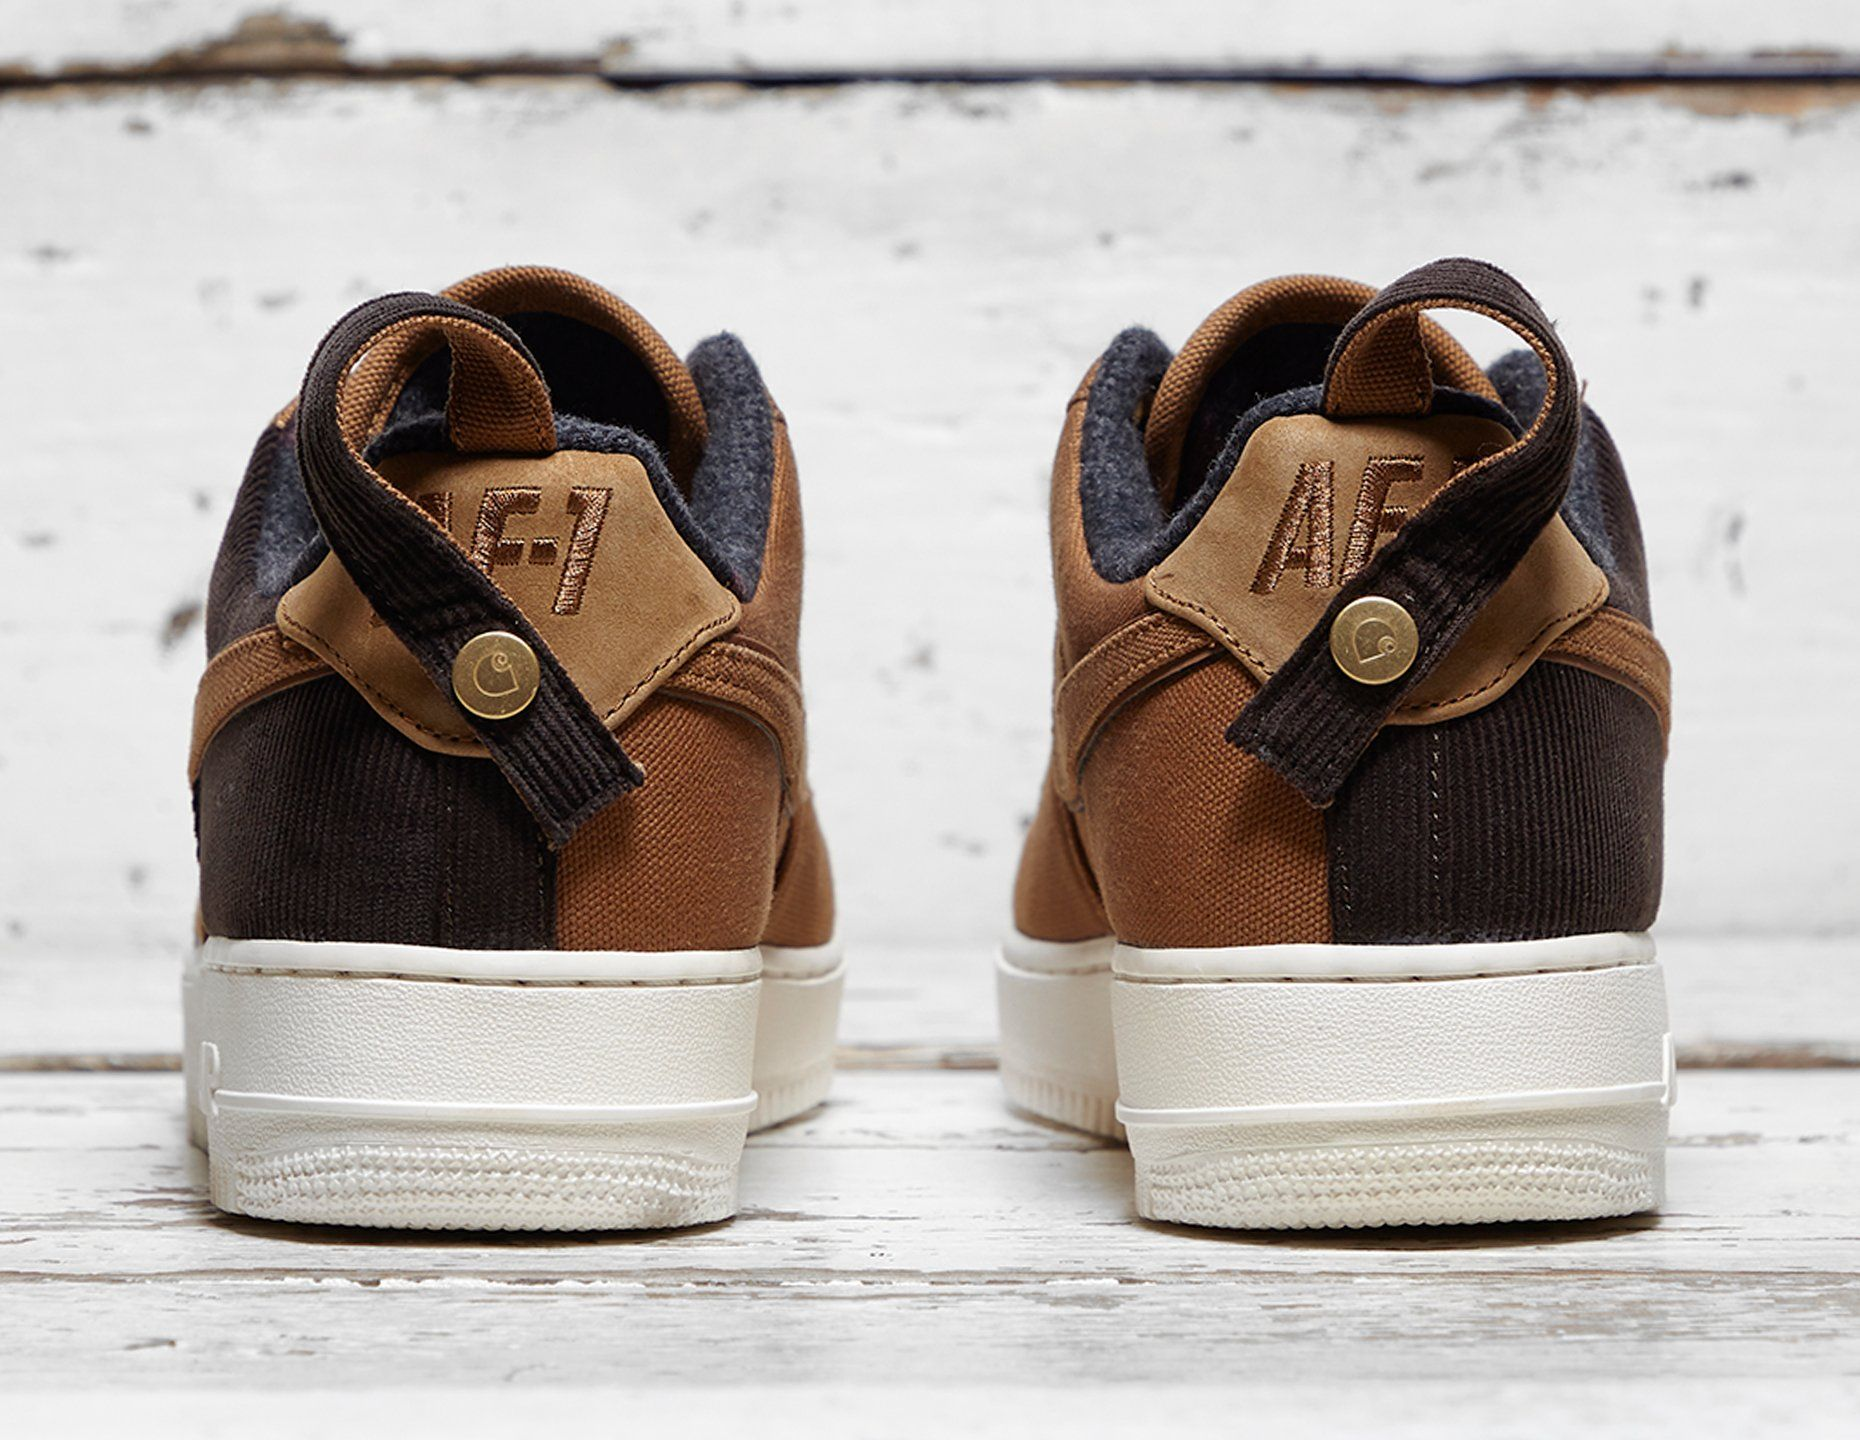 Nike x Carhartt WIP Air Force 1'07 Premium Low